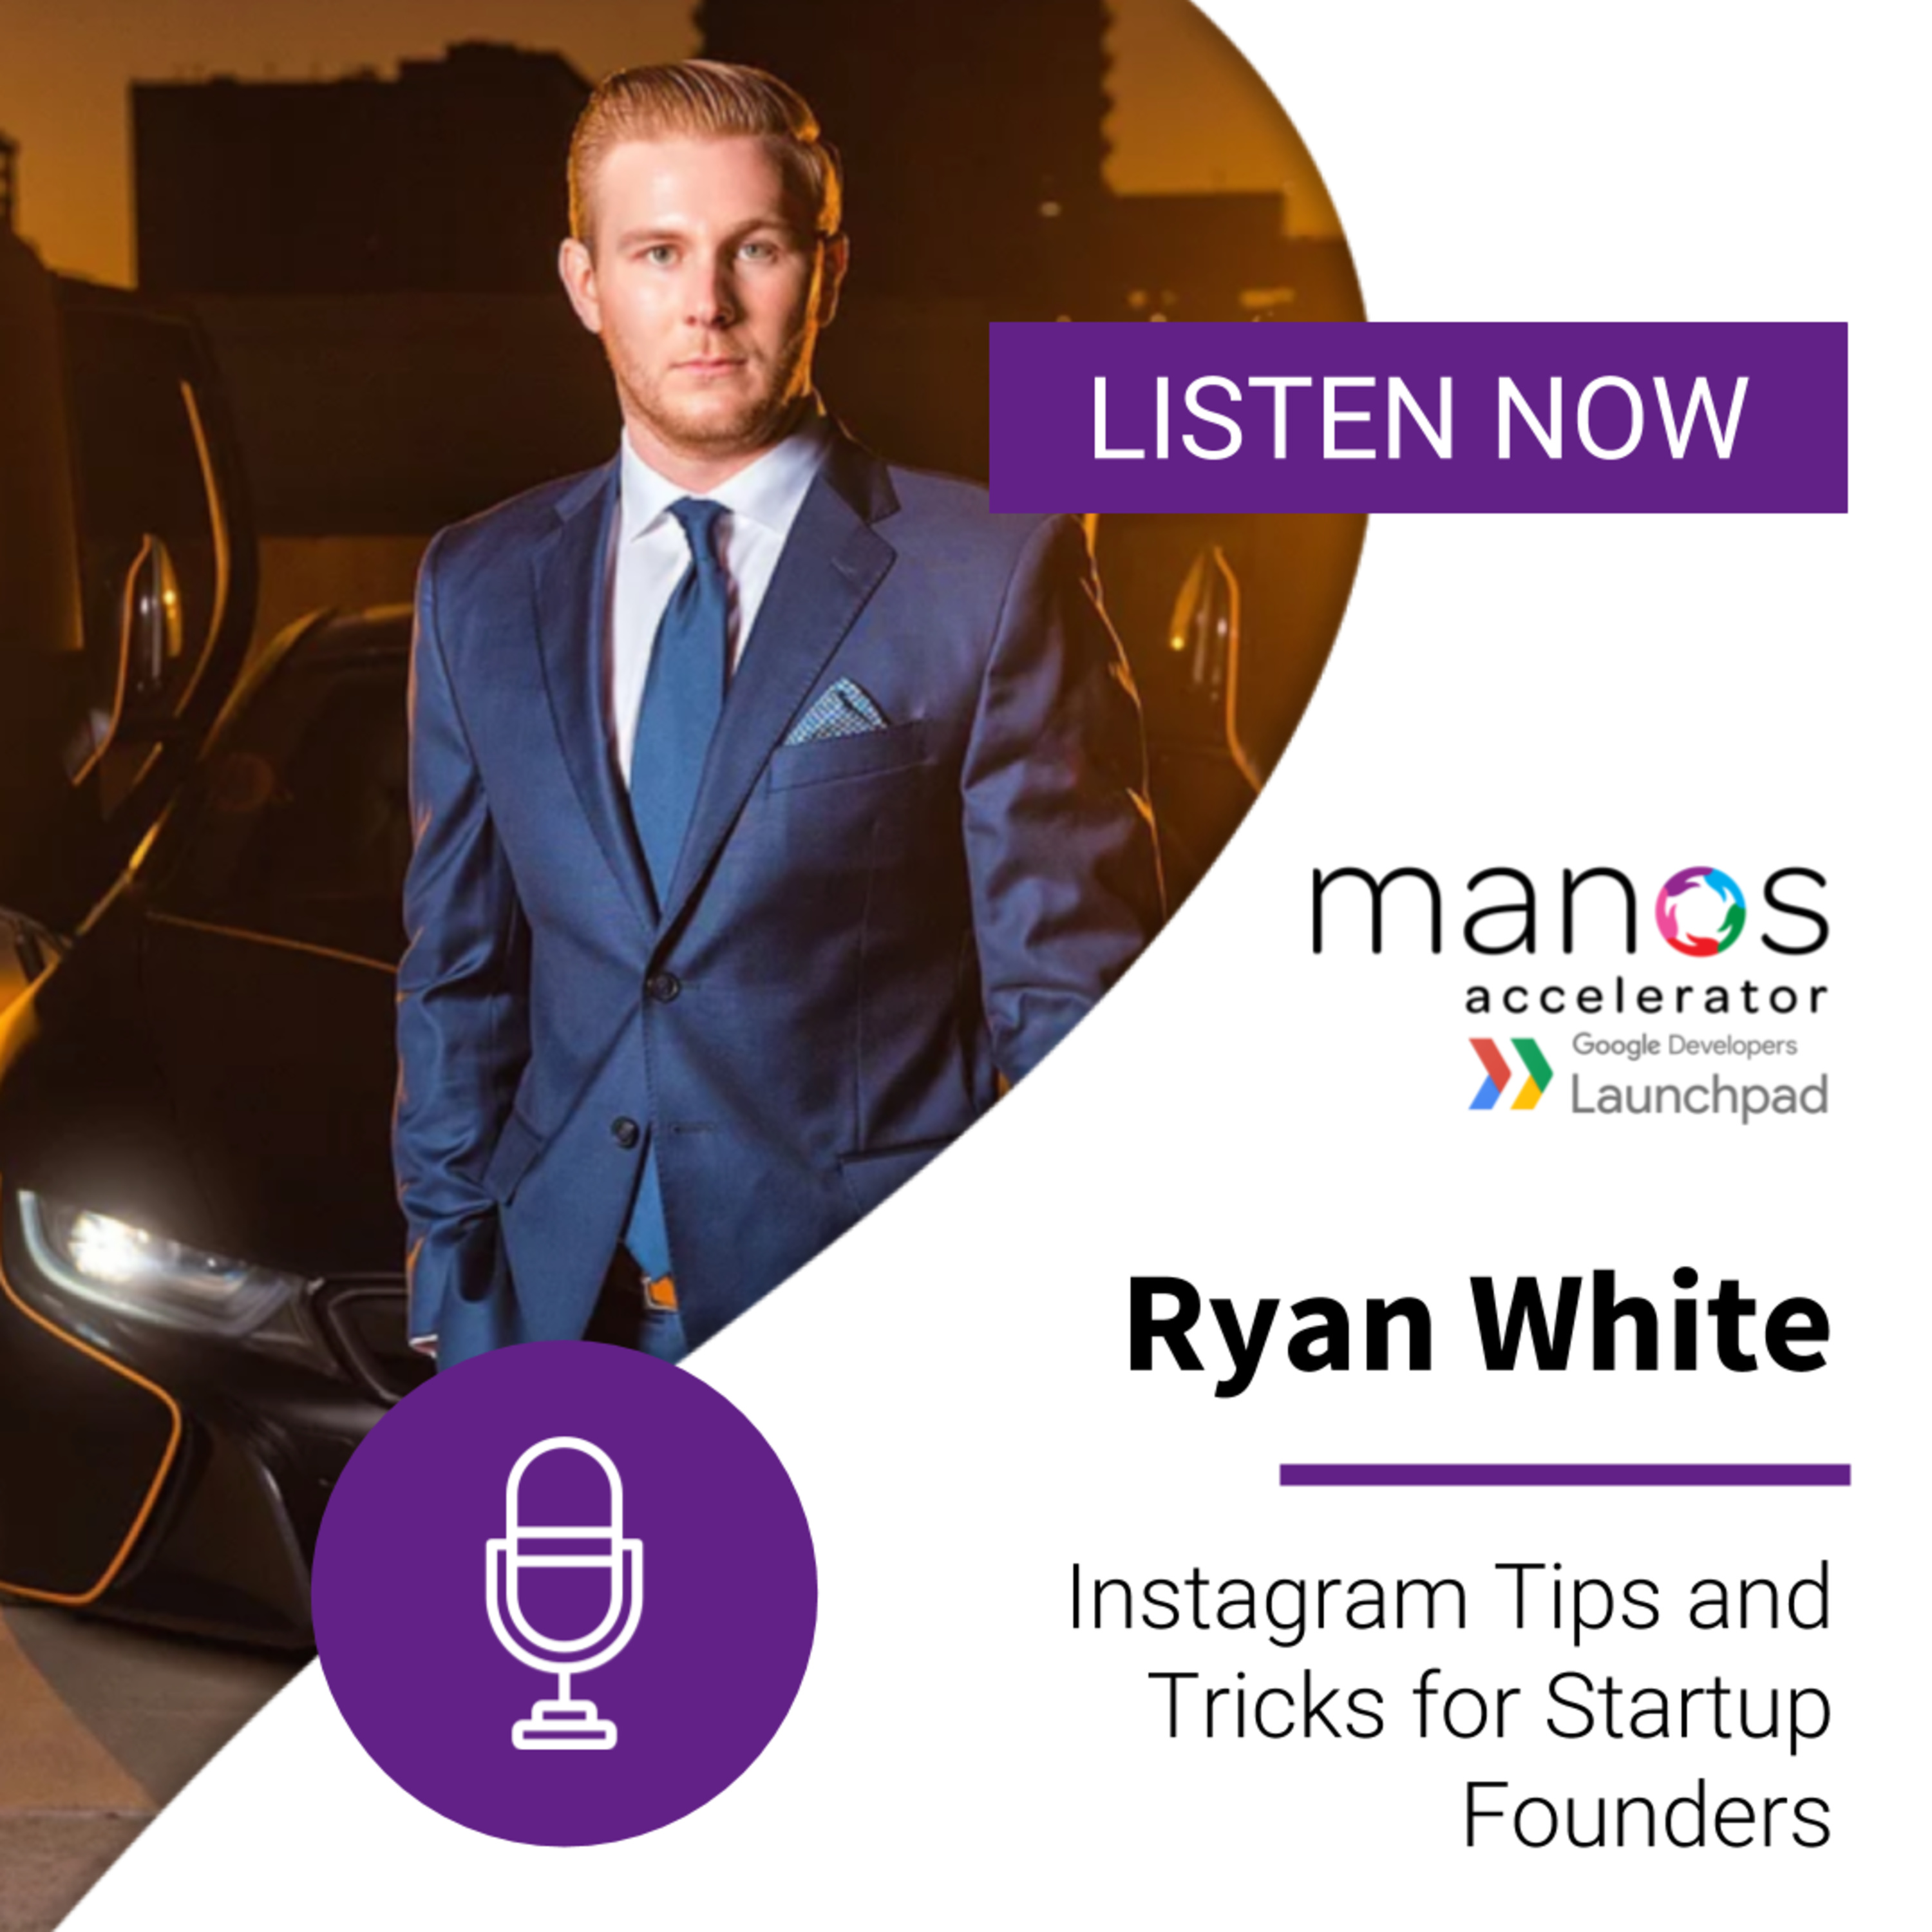 Instagram Tips and Tricks for Startup Founders - Ryan White